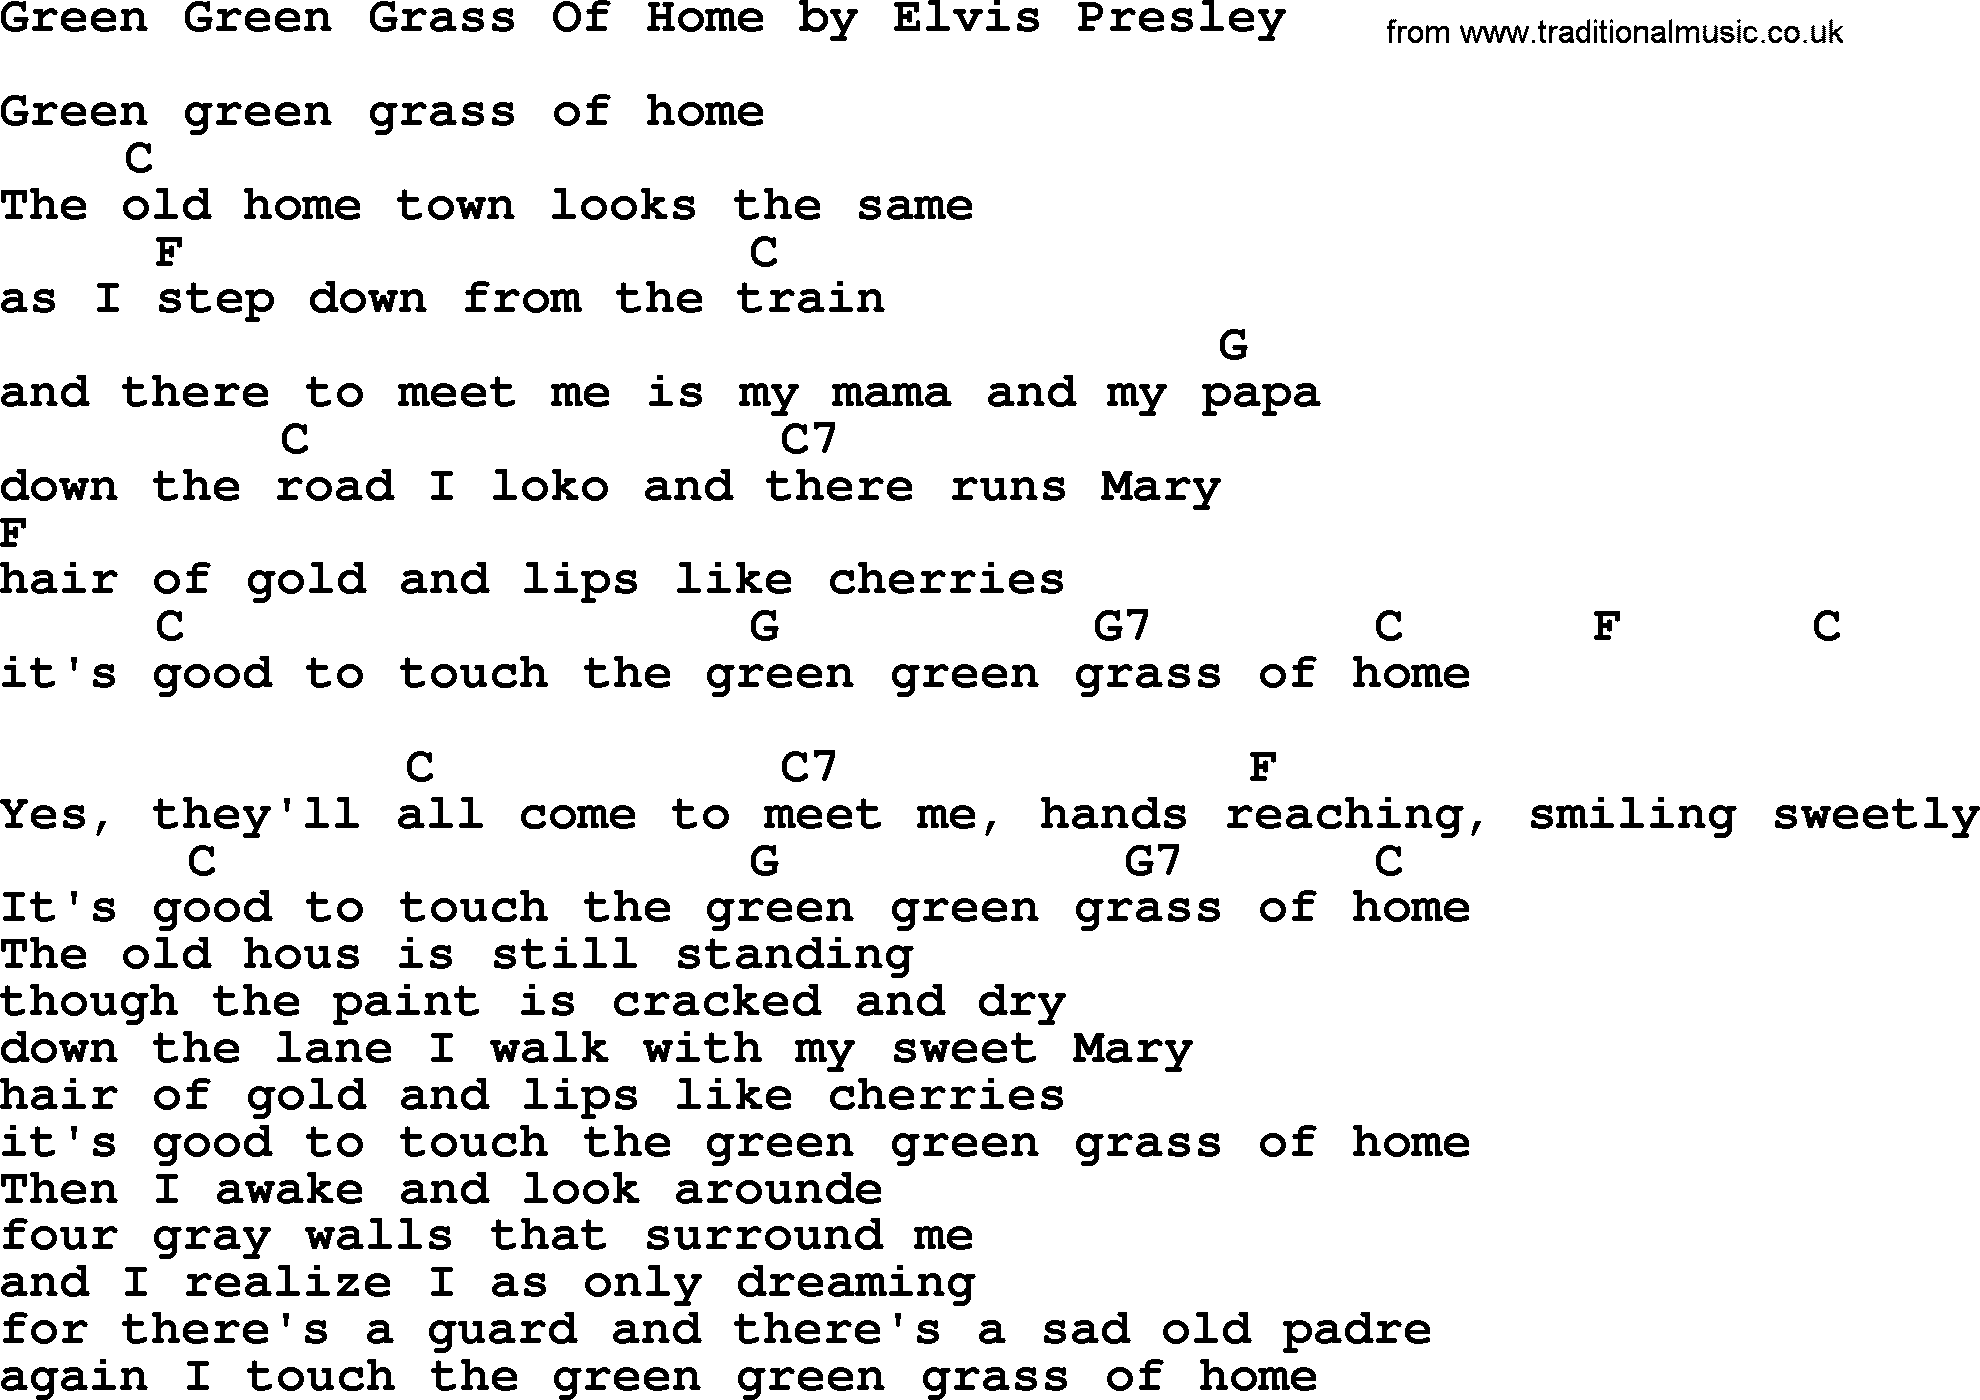 Green Green Grass Of Home, by Elvis Presley - lyrics and ...